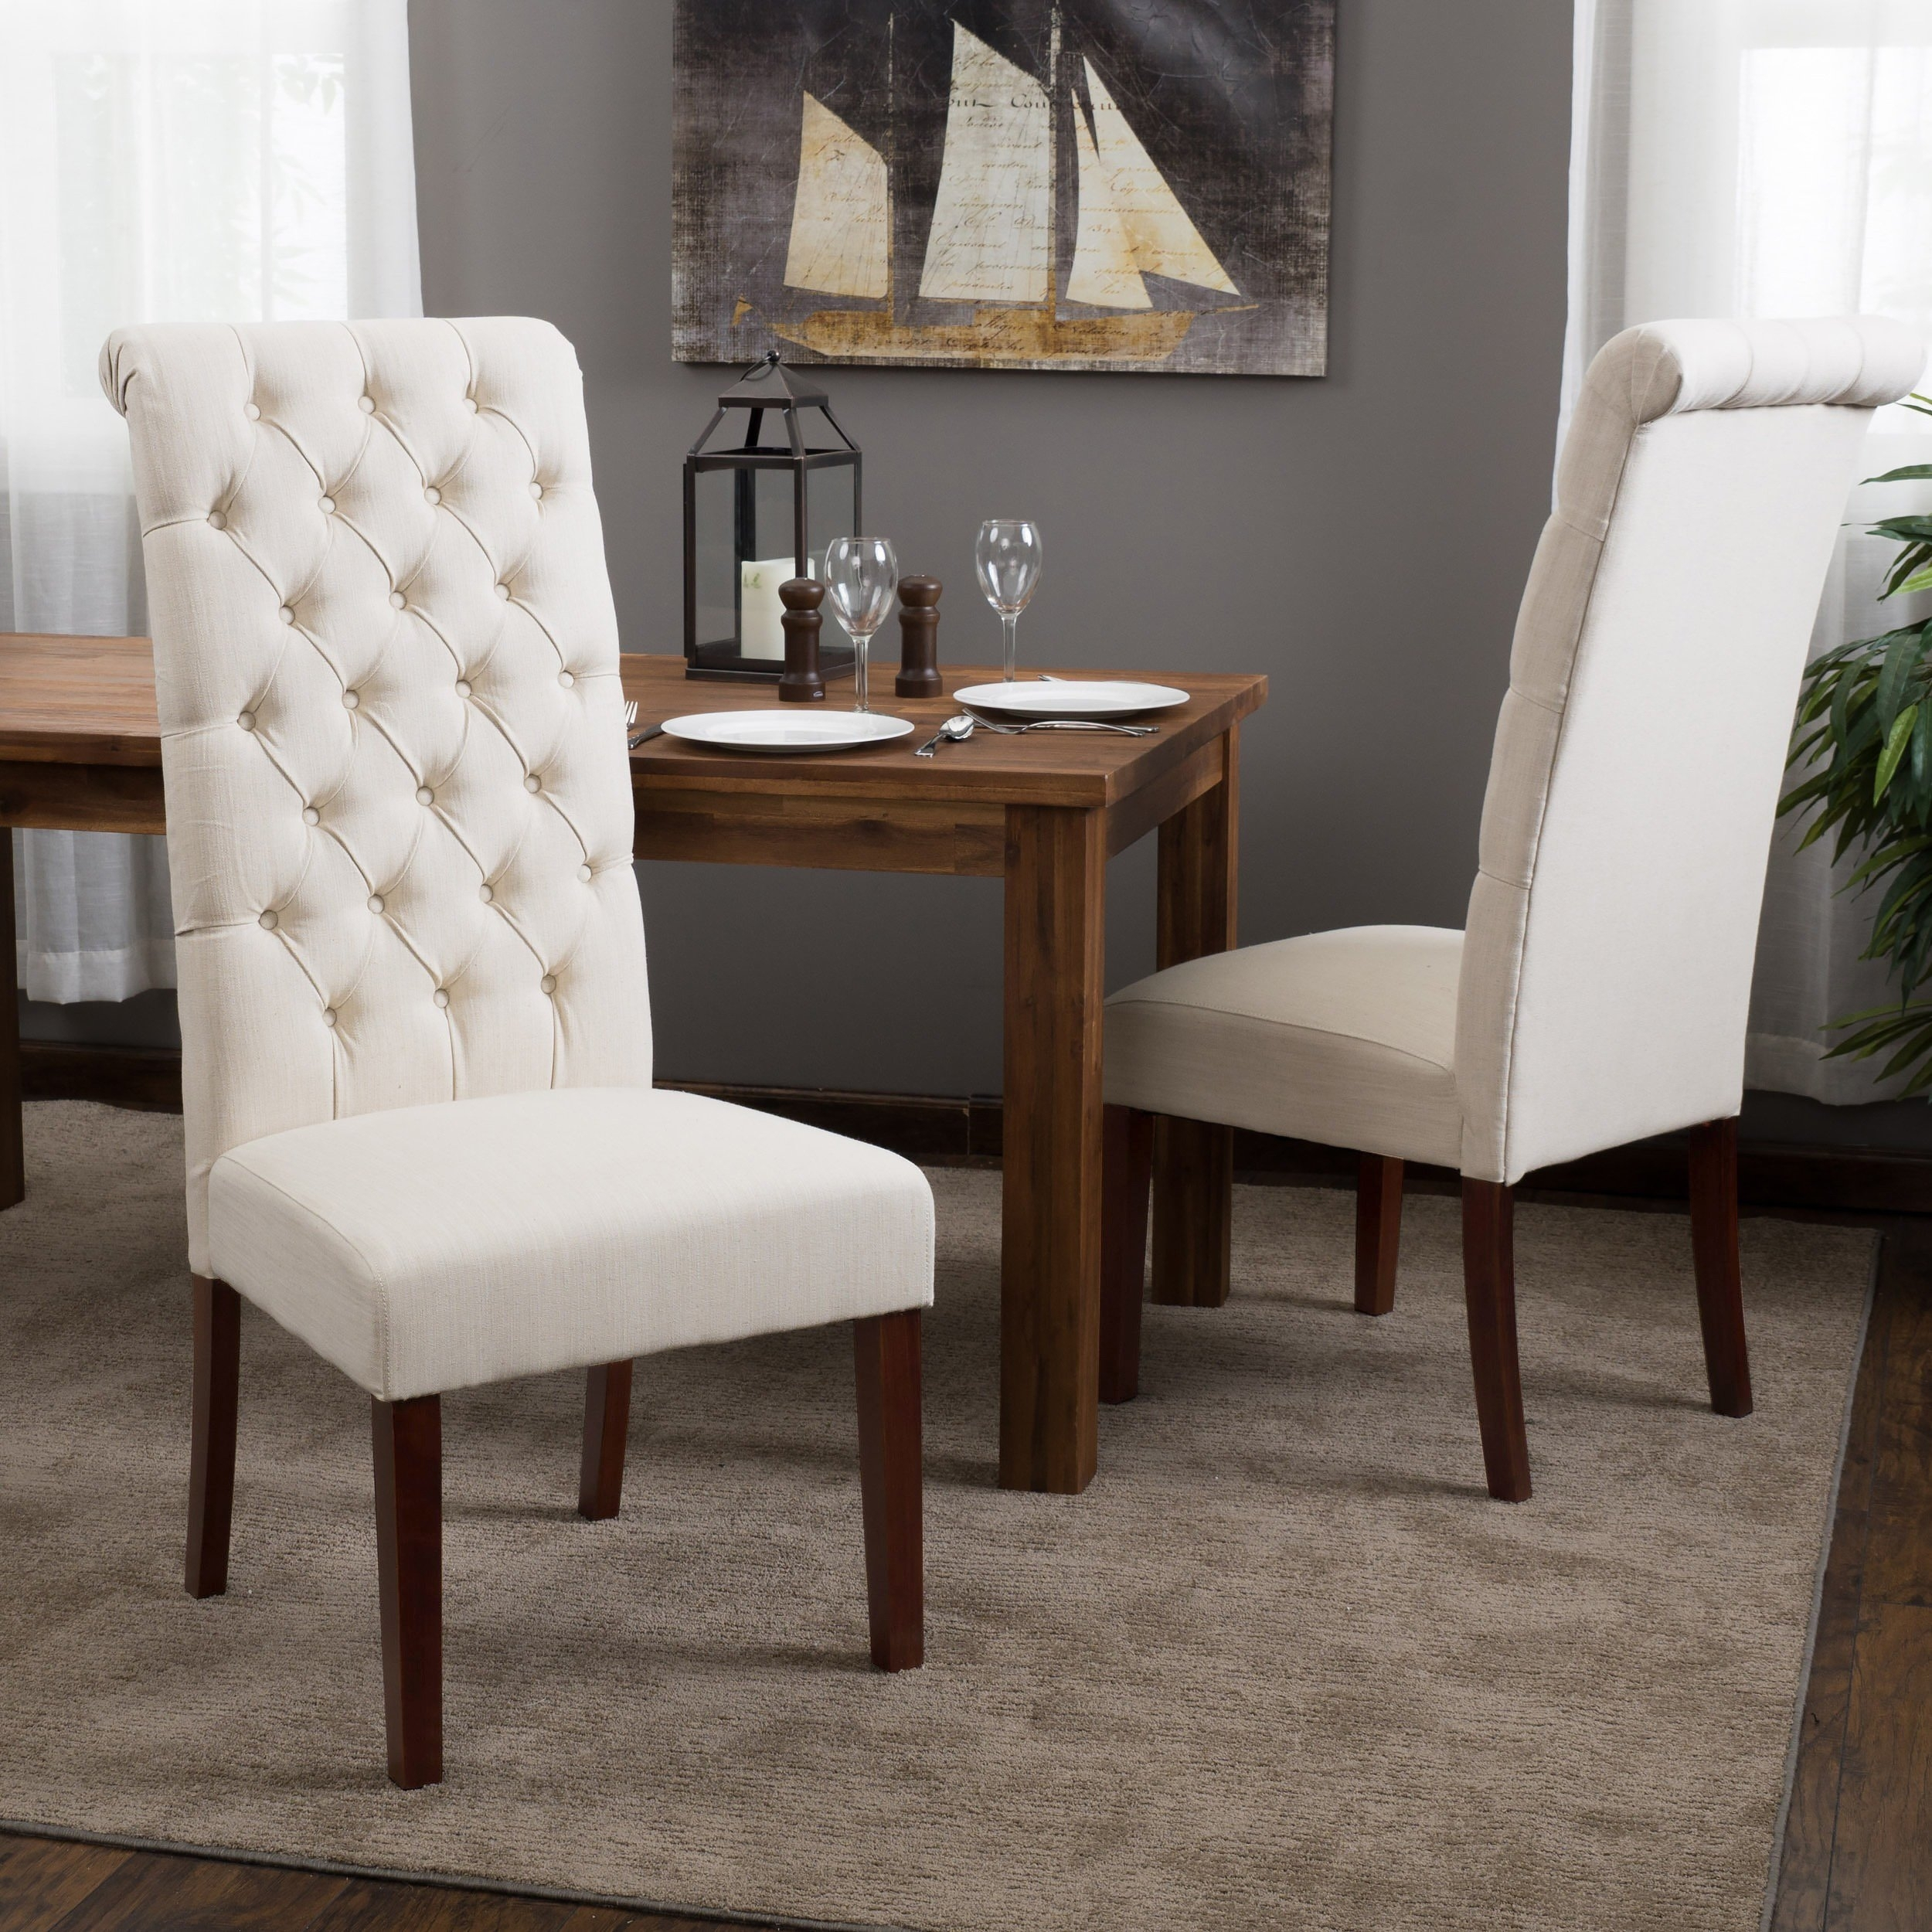 Shop Tall Natural Tufted Fabric Dining Chair (Set Of 2) For Most Recently Released Caira Black 7 Piece Dining Sets With Arm Chairs & Diamond Back Chairs (View 8 of 20)